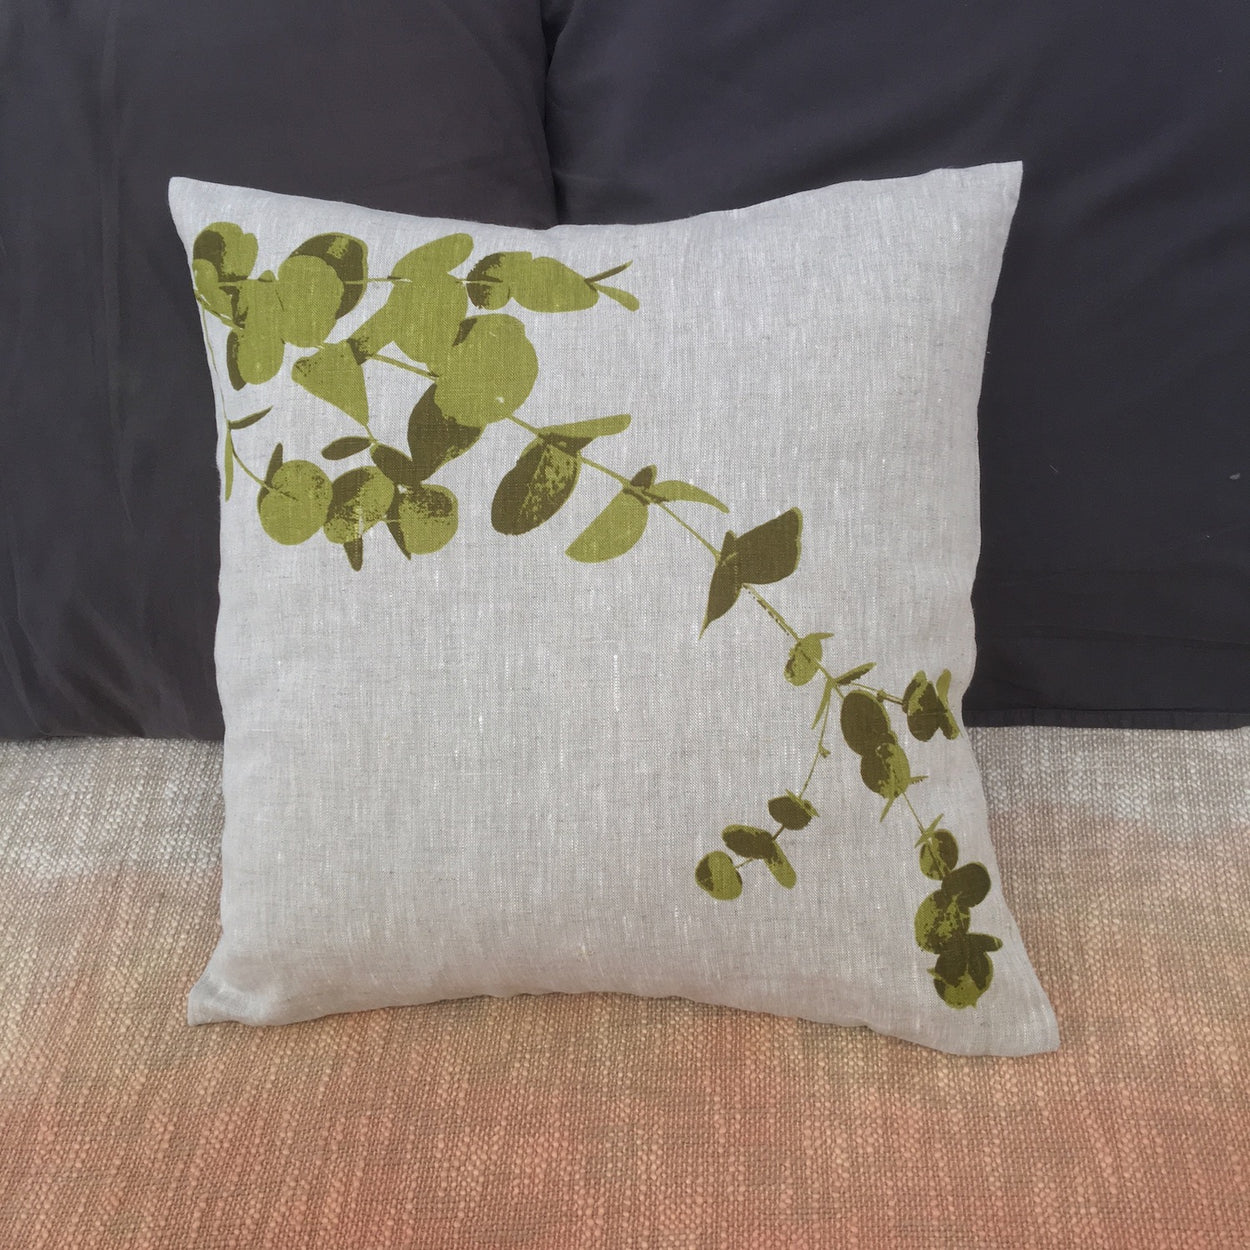 Photograph of eucalyptus leaves screenprinted on a cushion cover.